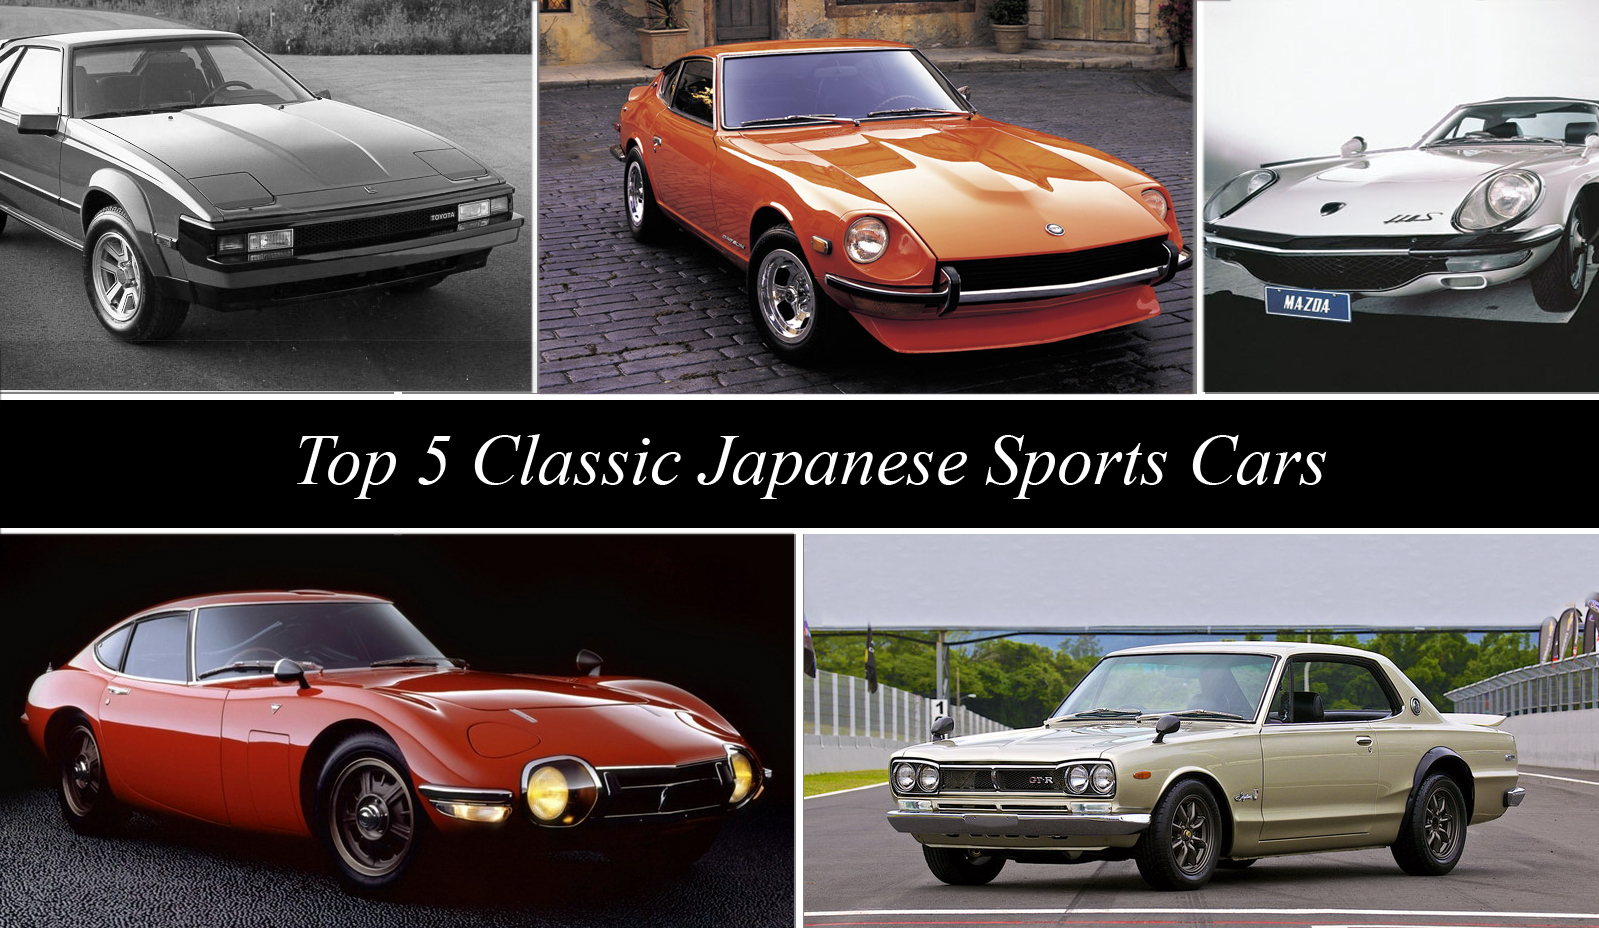 TopSpeedu0027s Top 5 Classic Japanese Sports Cars | Top Speed. »